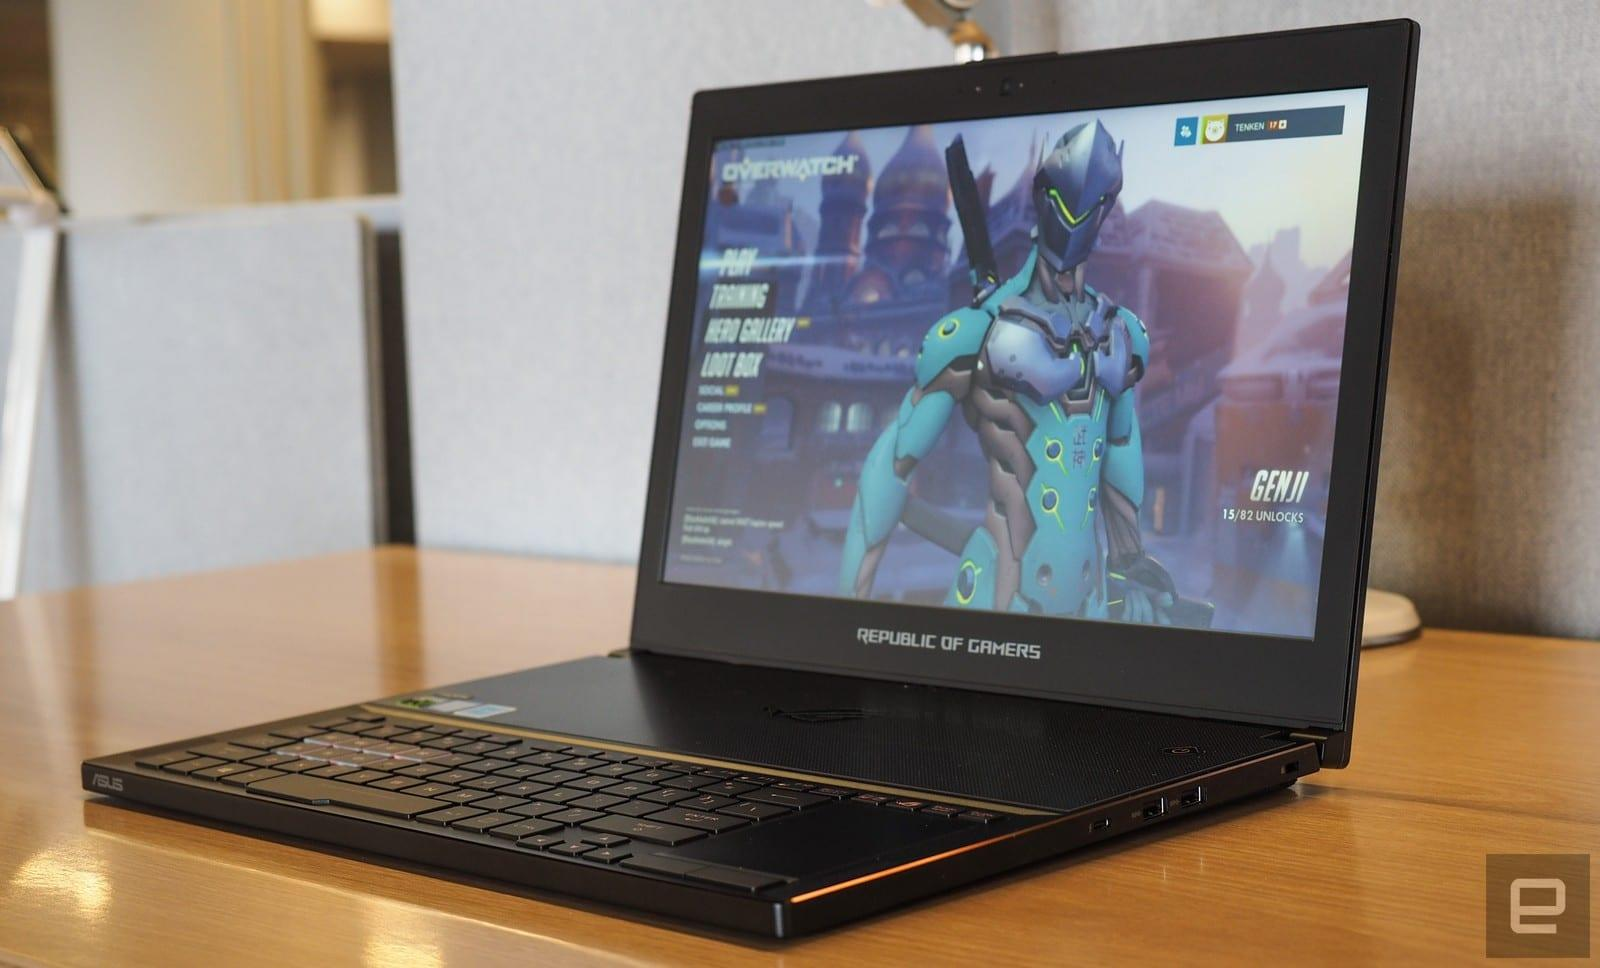 ASUS ROG Zephyrus review: Gaming laptops will never be the same again